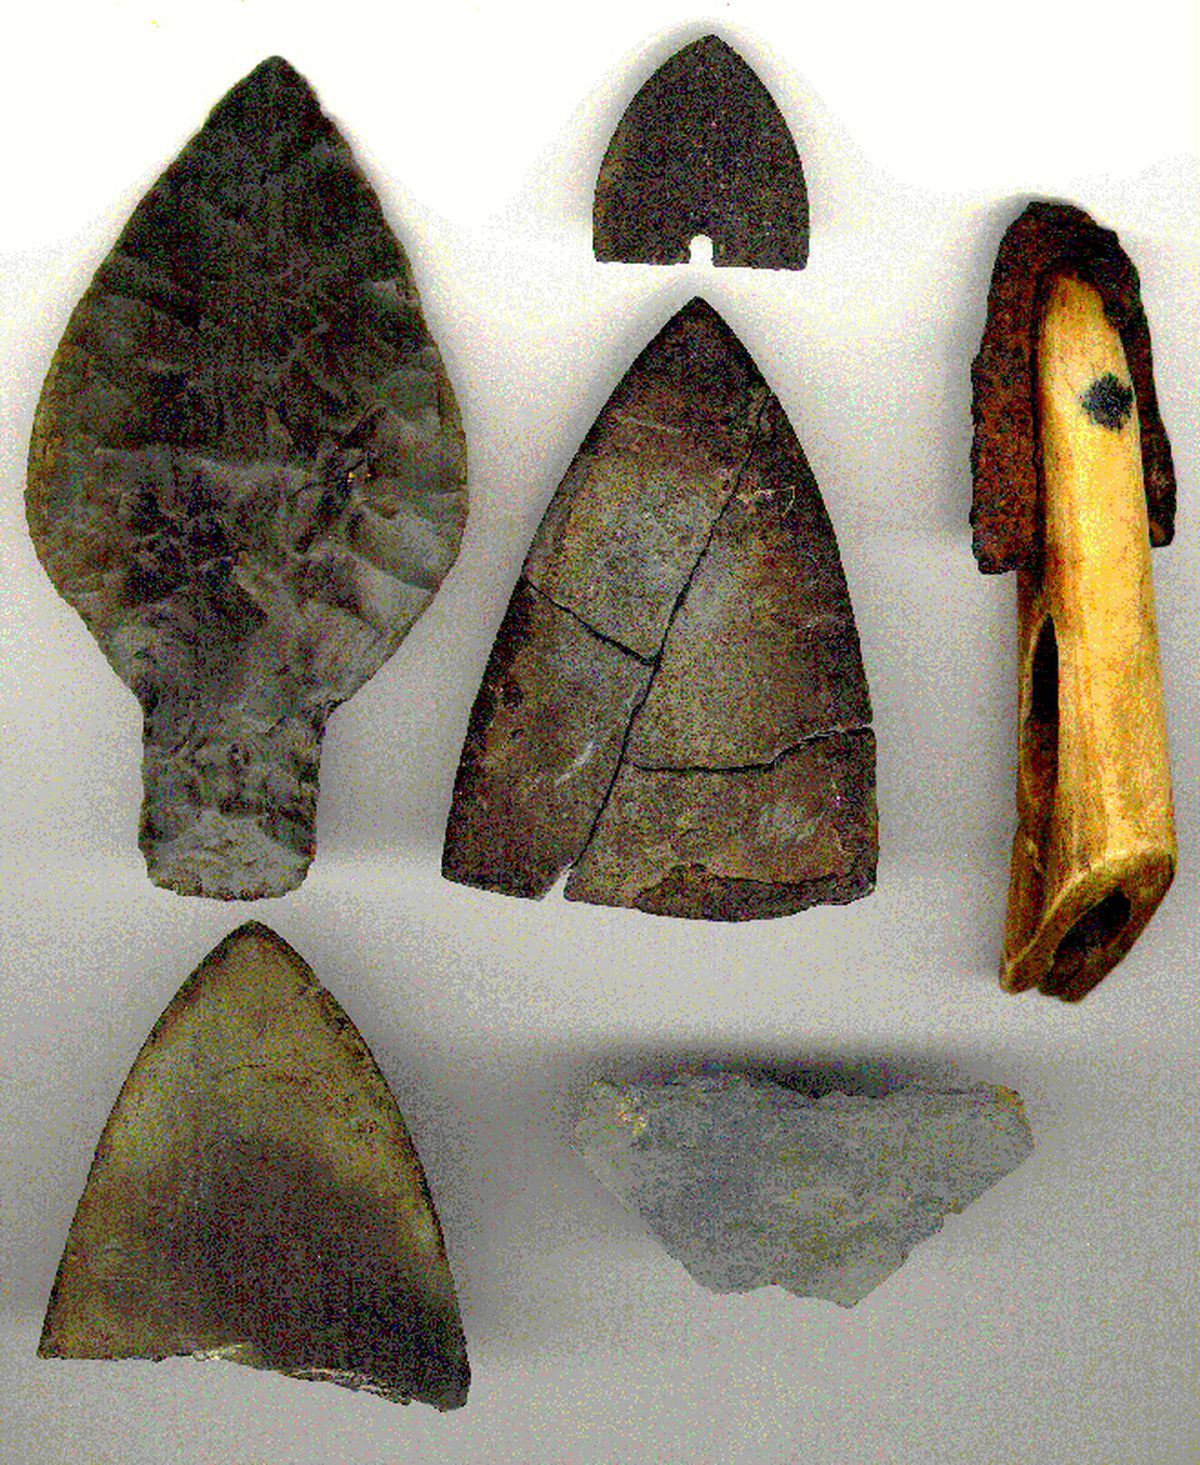 Alaska Native hunters have found six ancient harpoon points in bowhead whales since 1981, two made of slate, two of other stone, a metal blade and an ivory harpoon head tipped with metal. (Craig George / Alaska Eskimo Whaling Commission)